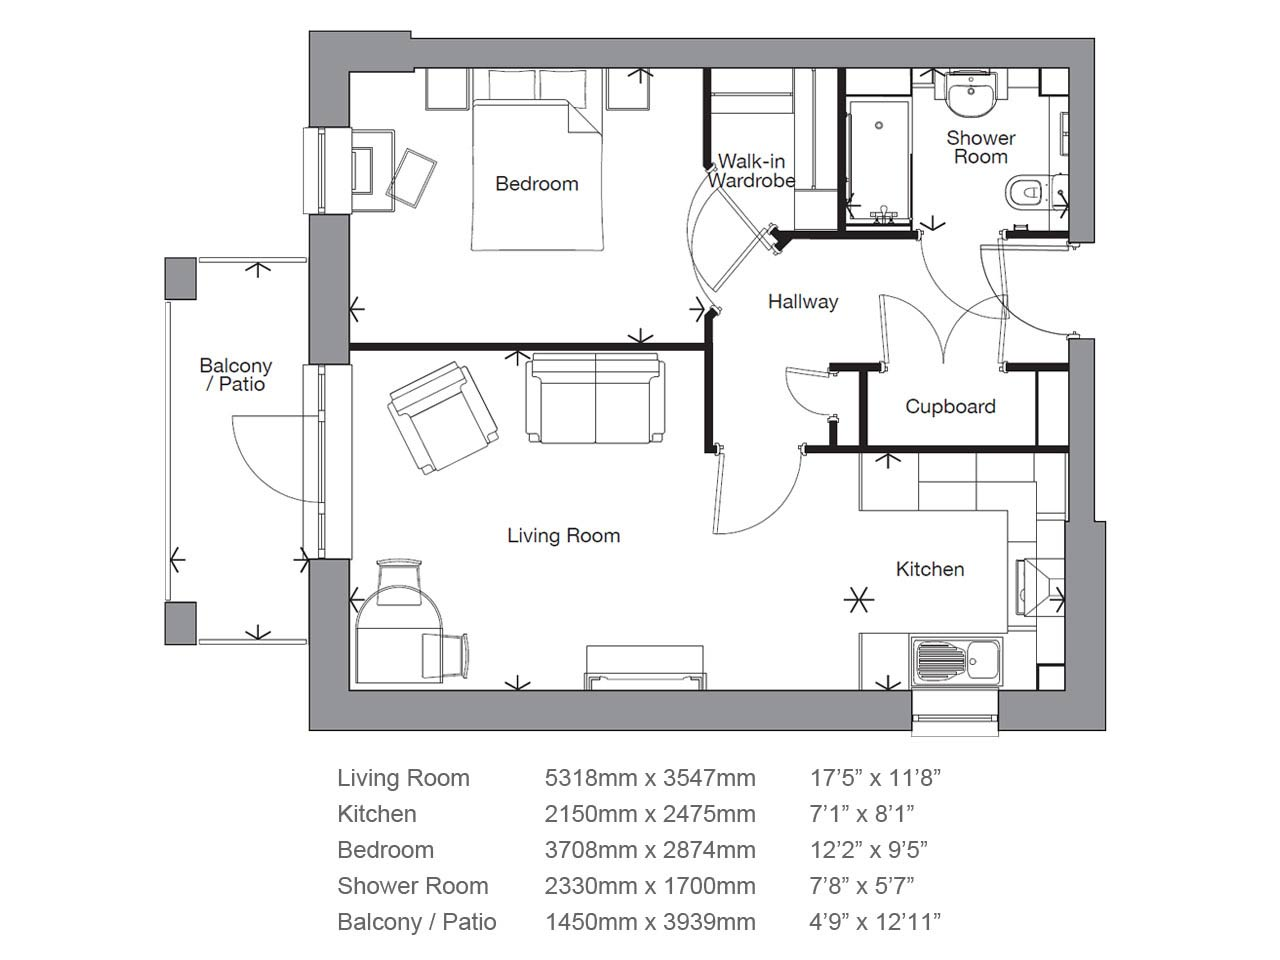 Retirement Property Apartment Number 14 Priced at £314,950